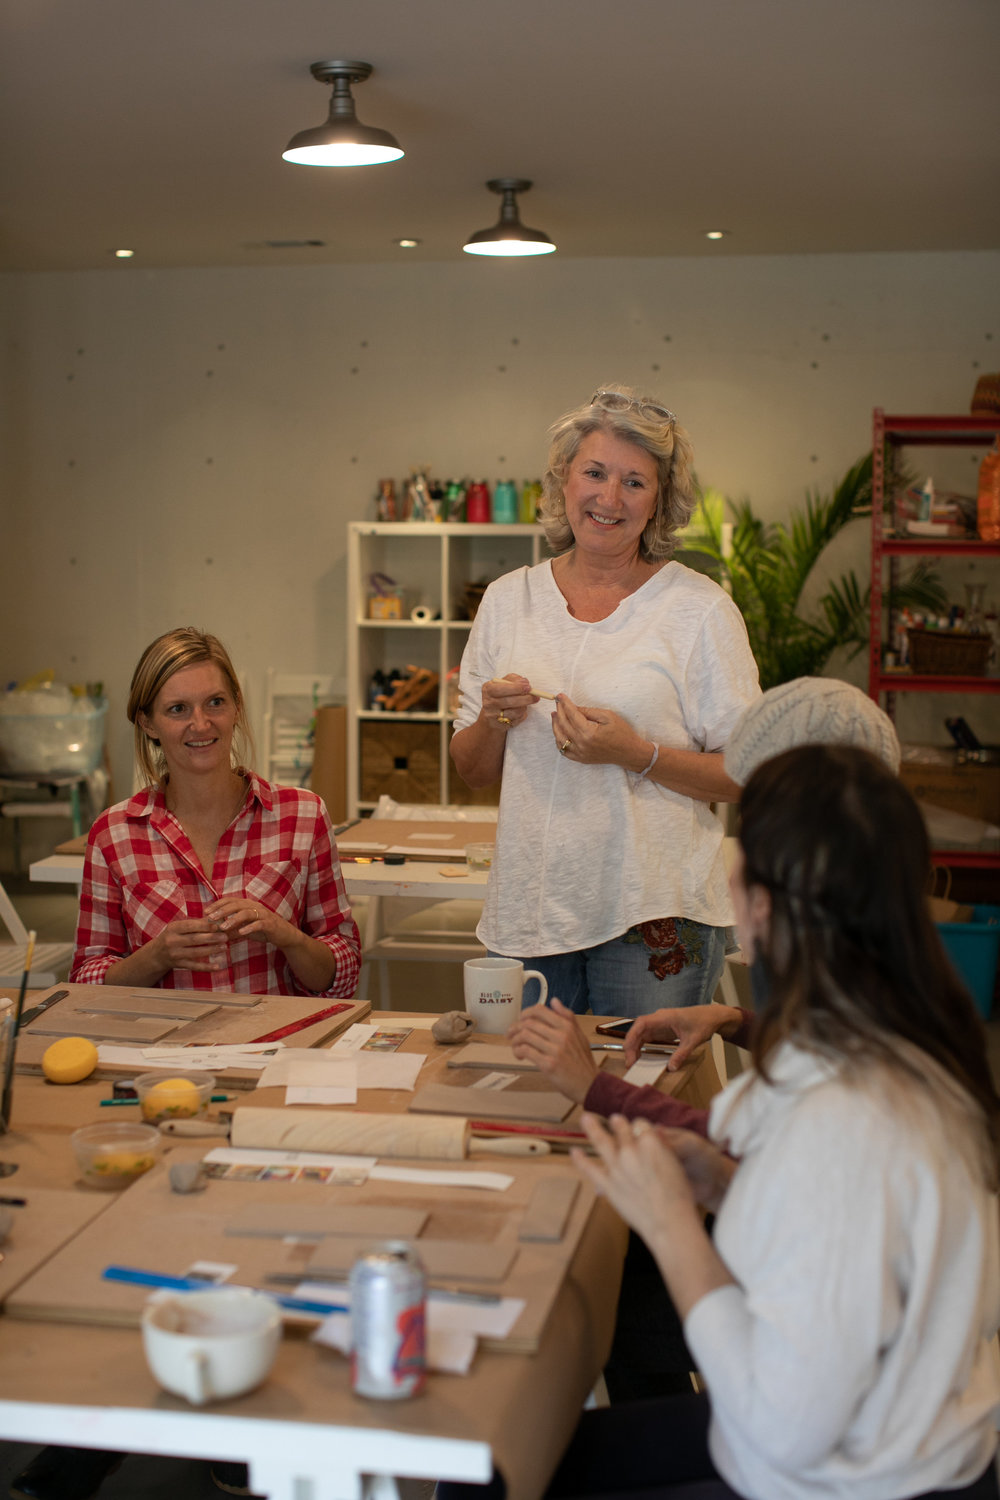 Julie McKinney    instructs the first Ceramics Class at Art Farm Studio. Photo by    J. Ashley Photography   .